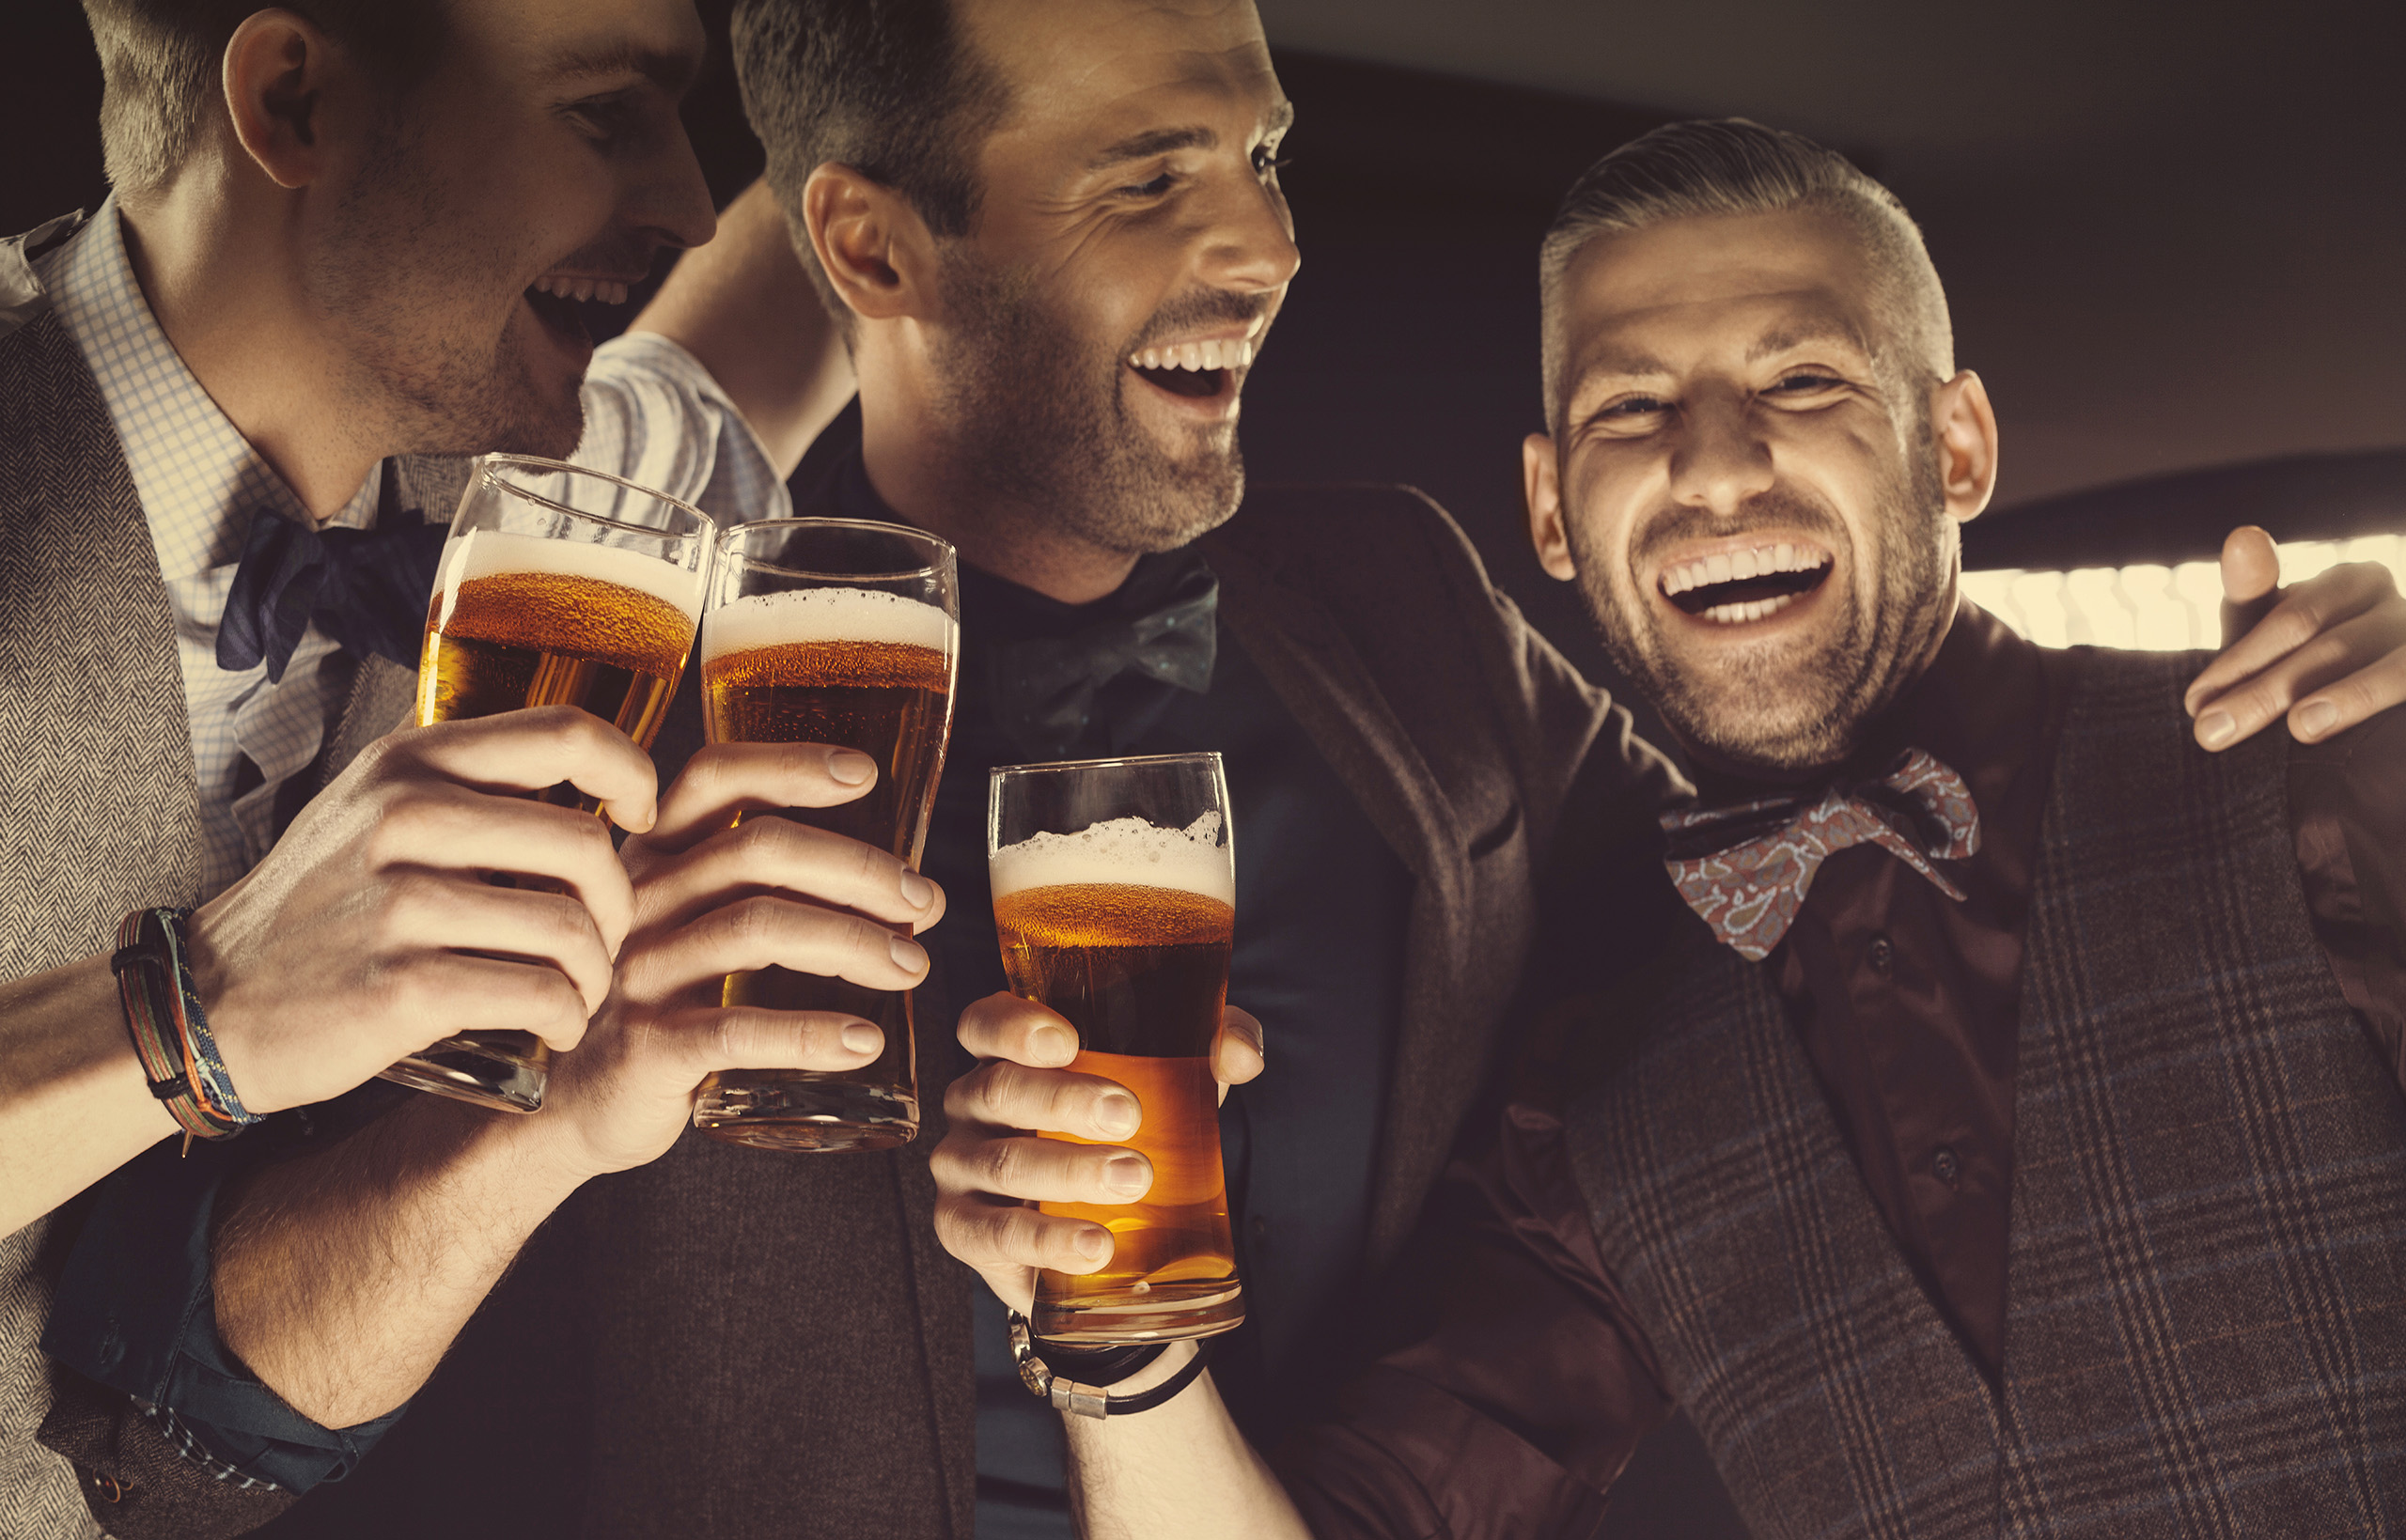 Guys Drinking together.